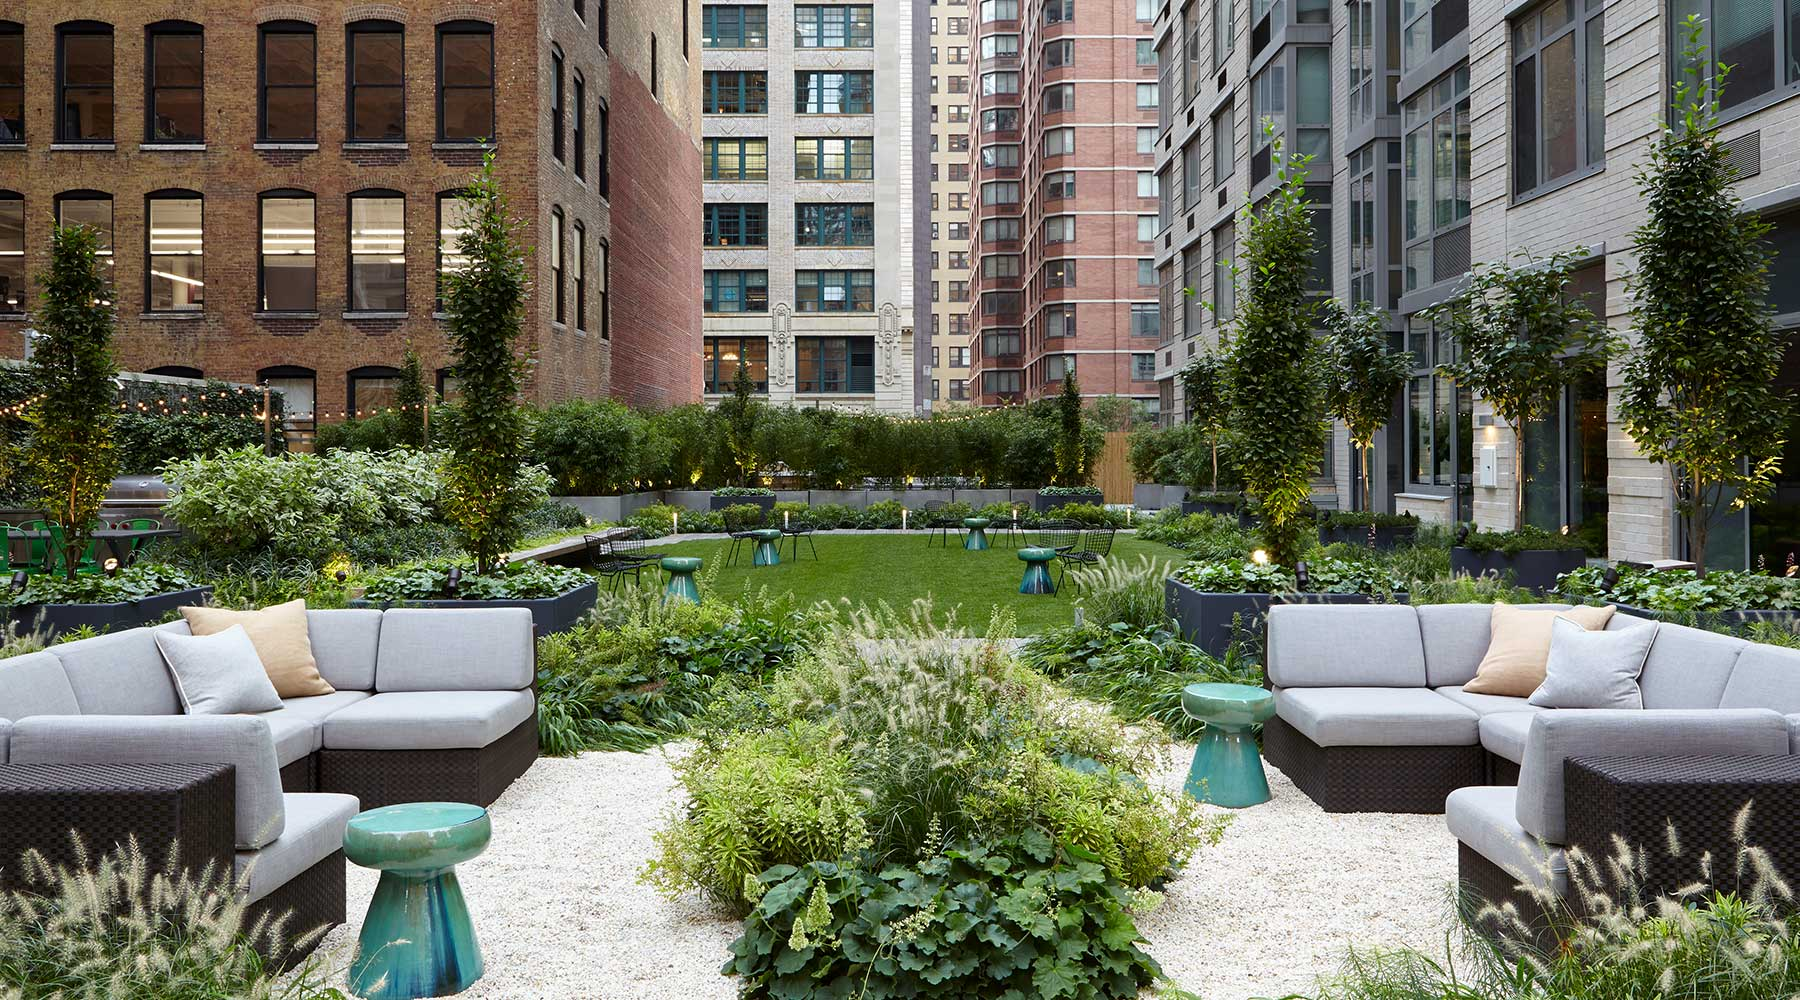 Evolution of Outdoor Spaces